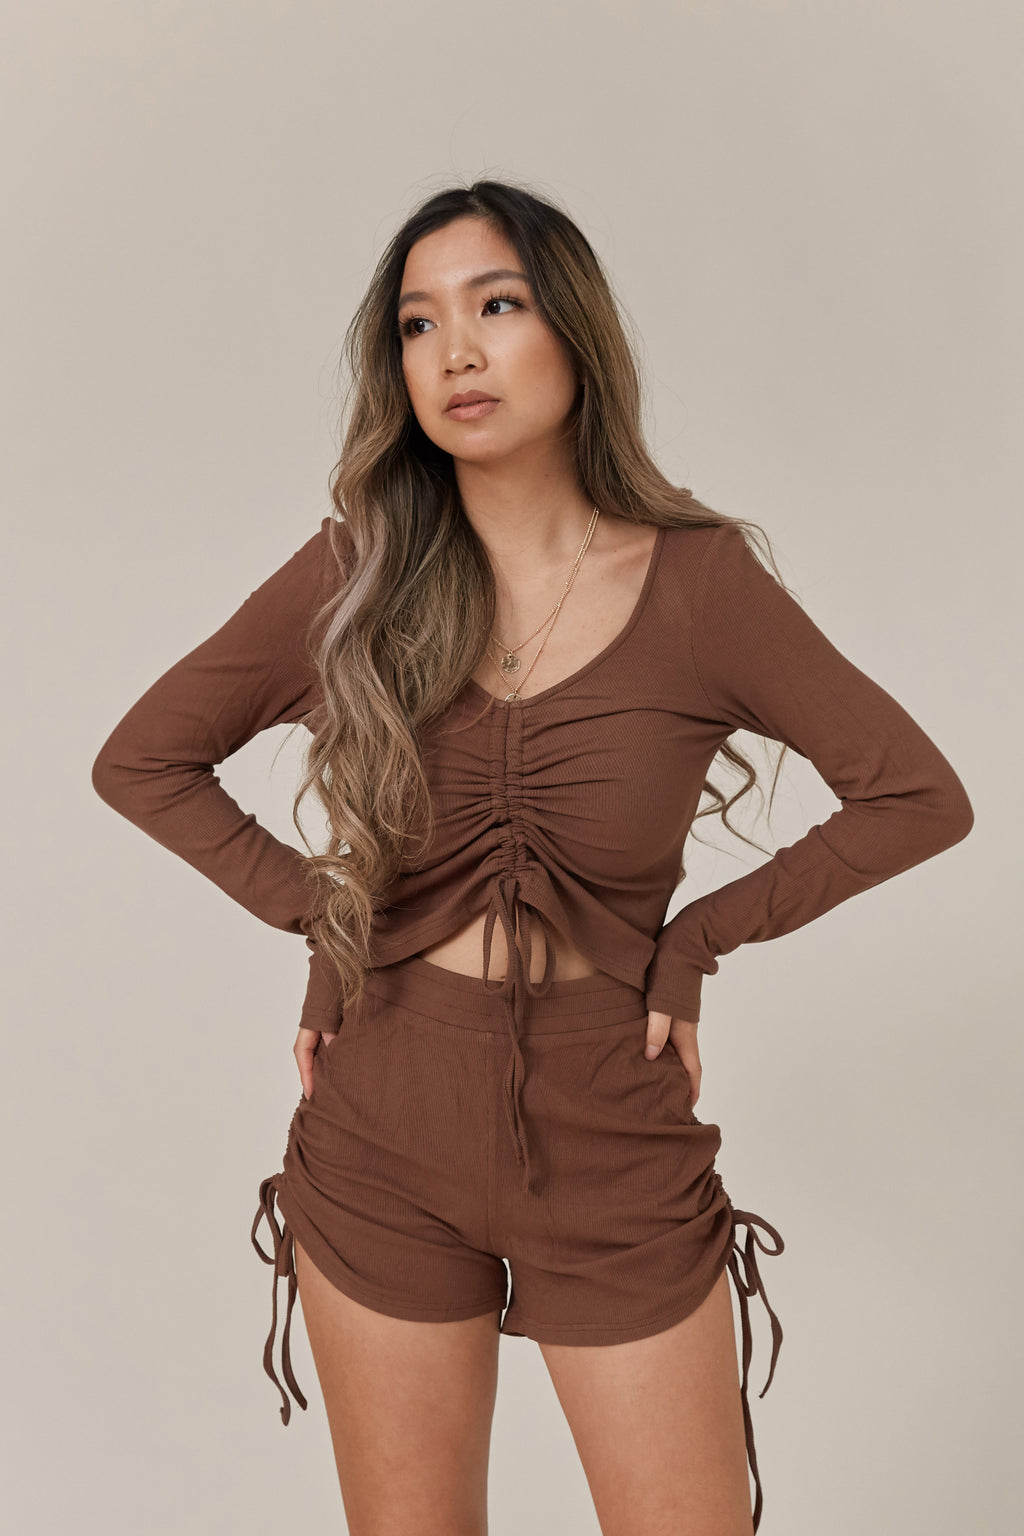 wild rina wildrina.com ruched knit chocolate brown shorts long sleeve set lougewear soft comfy home wear